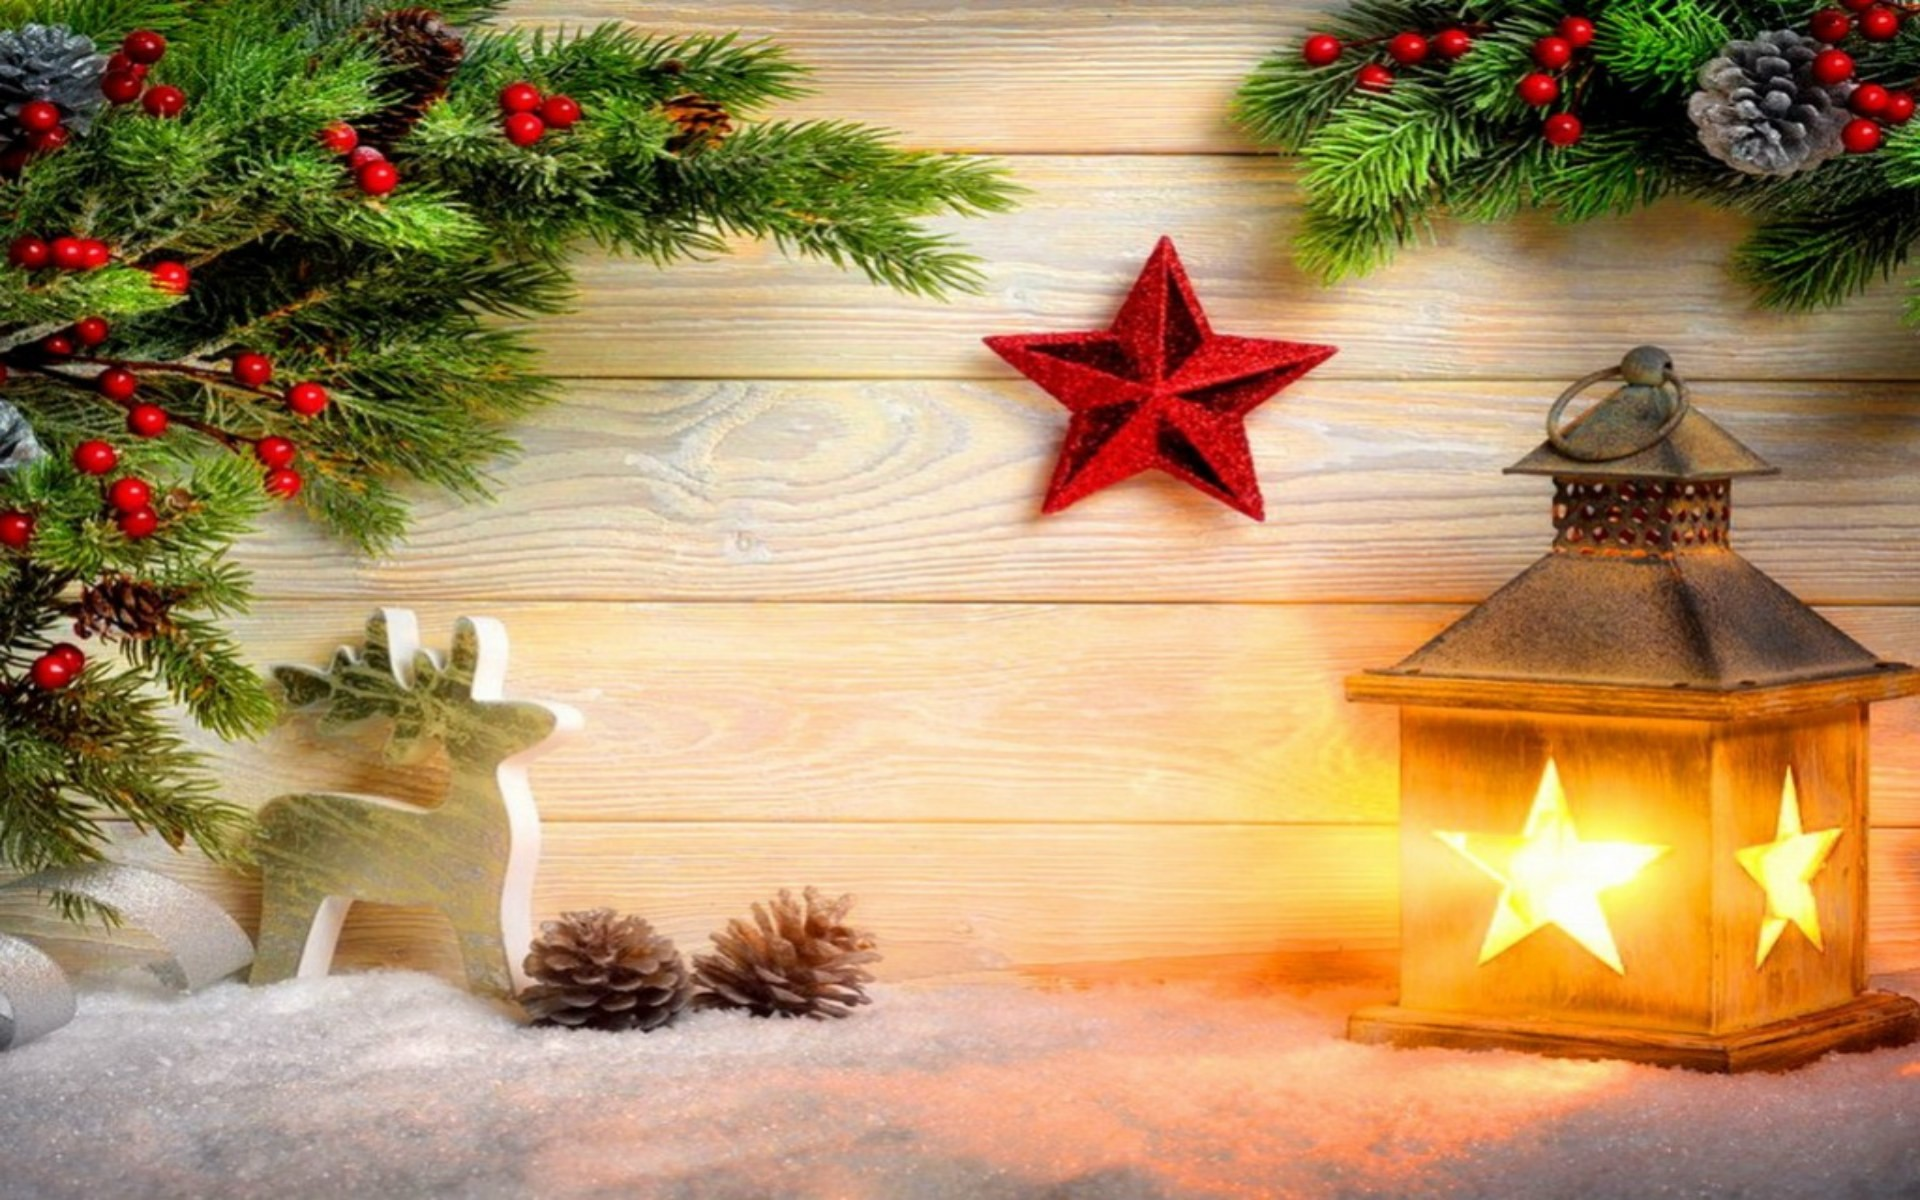 Country Christmas Wallpaper (52+ images)